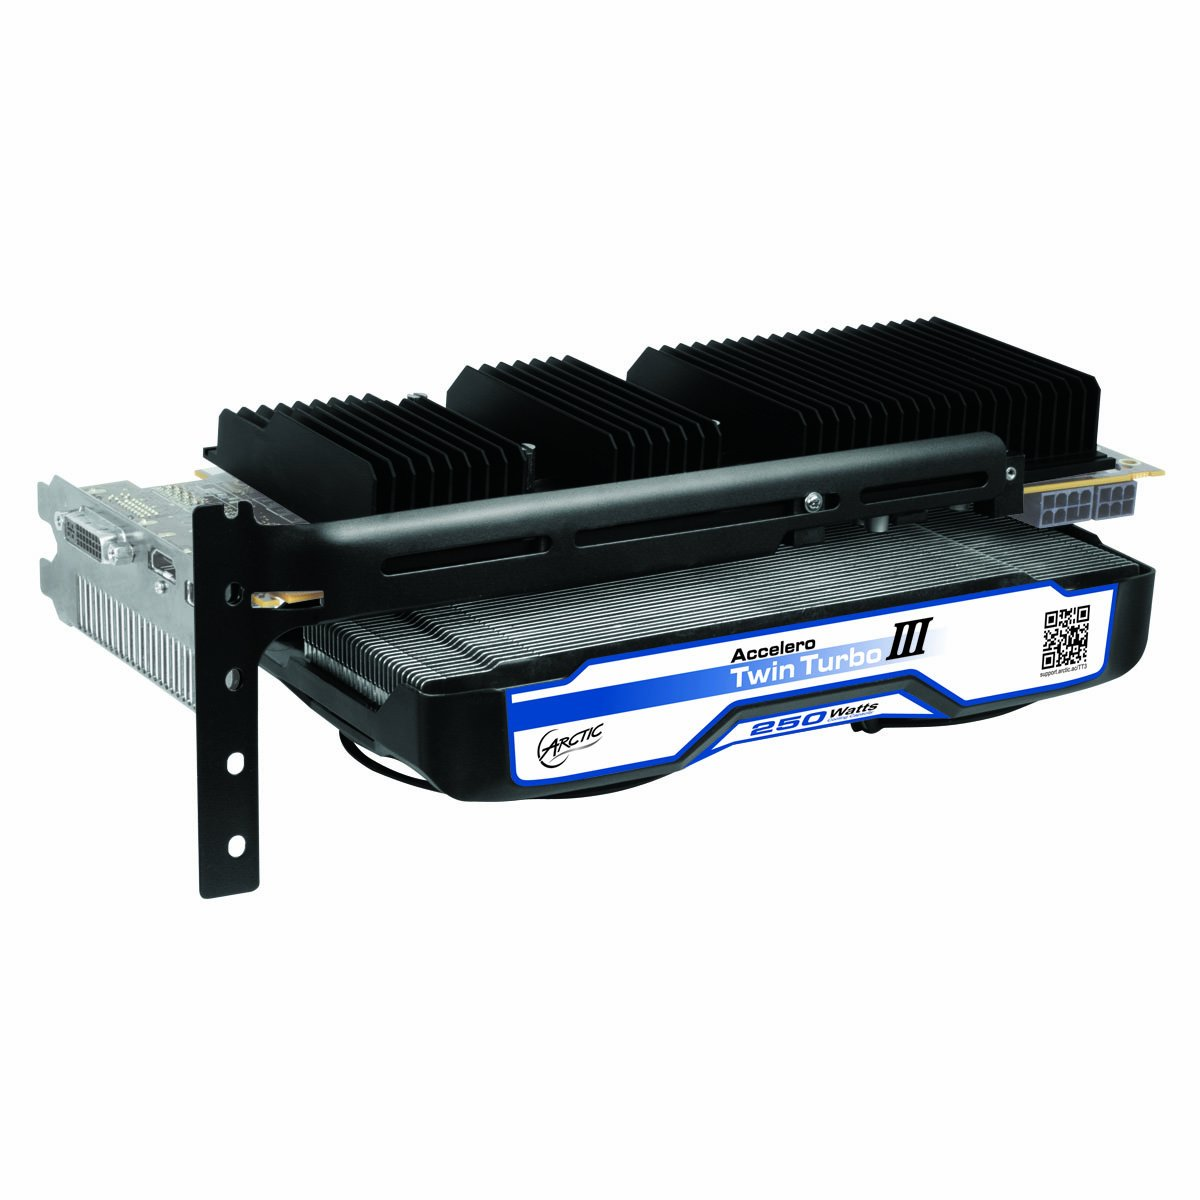 ARCTIC Accelero Twin Turbo III Graphics Card Cooler with Backside Cooler for Efficient RAM, VRM Cooling and VGA Cooler DCACO-V820001-GBA01 by ARCTIC (Image #7)